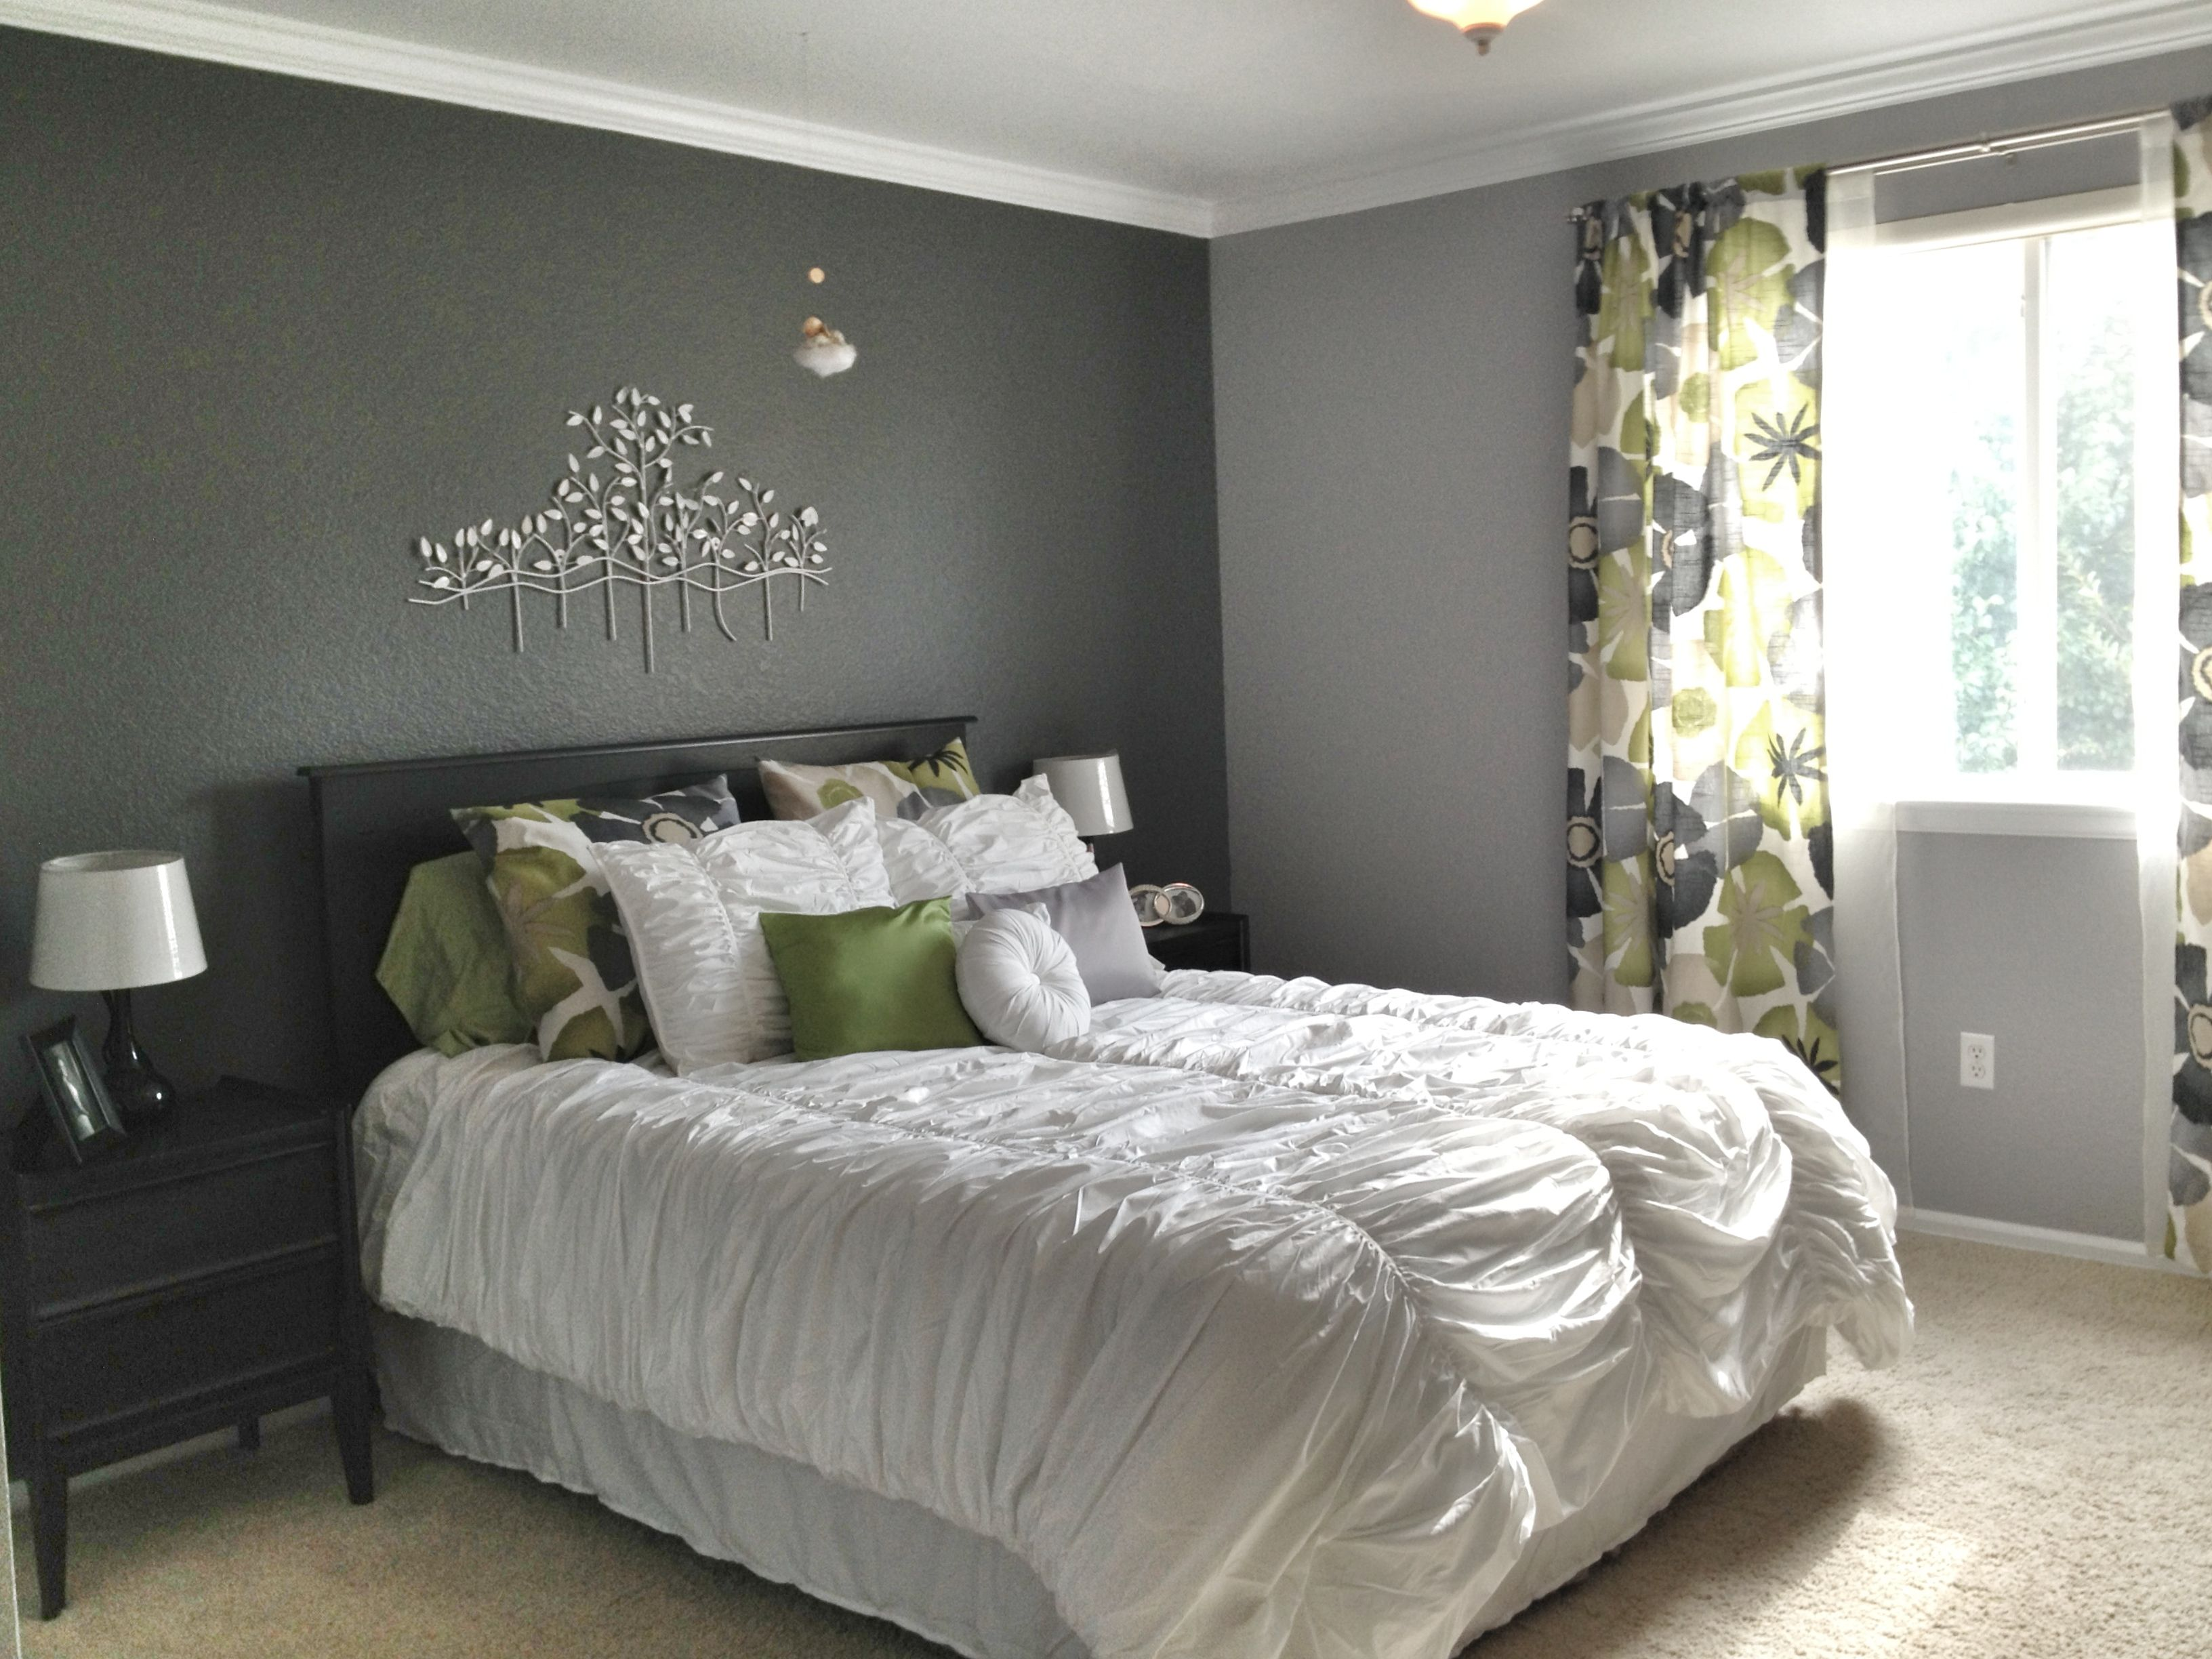 Grey master bedroom dark accent wall fun patterned curtains with matching shams and bright white bedding